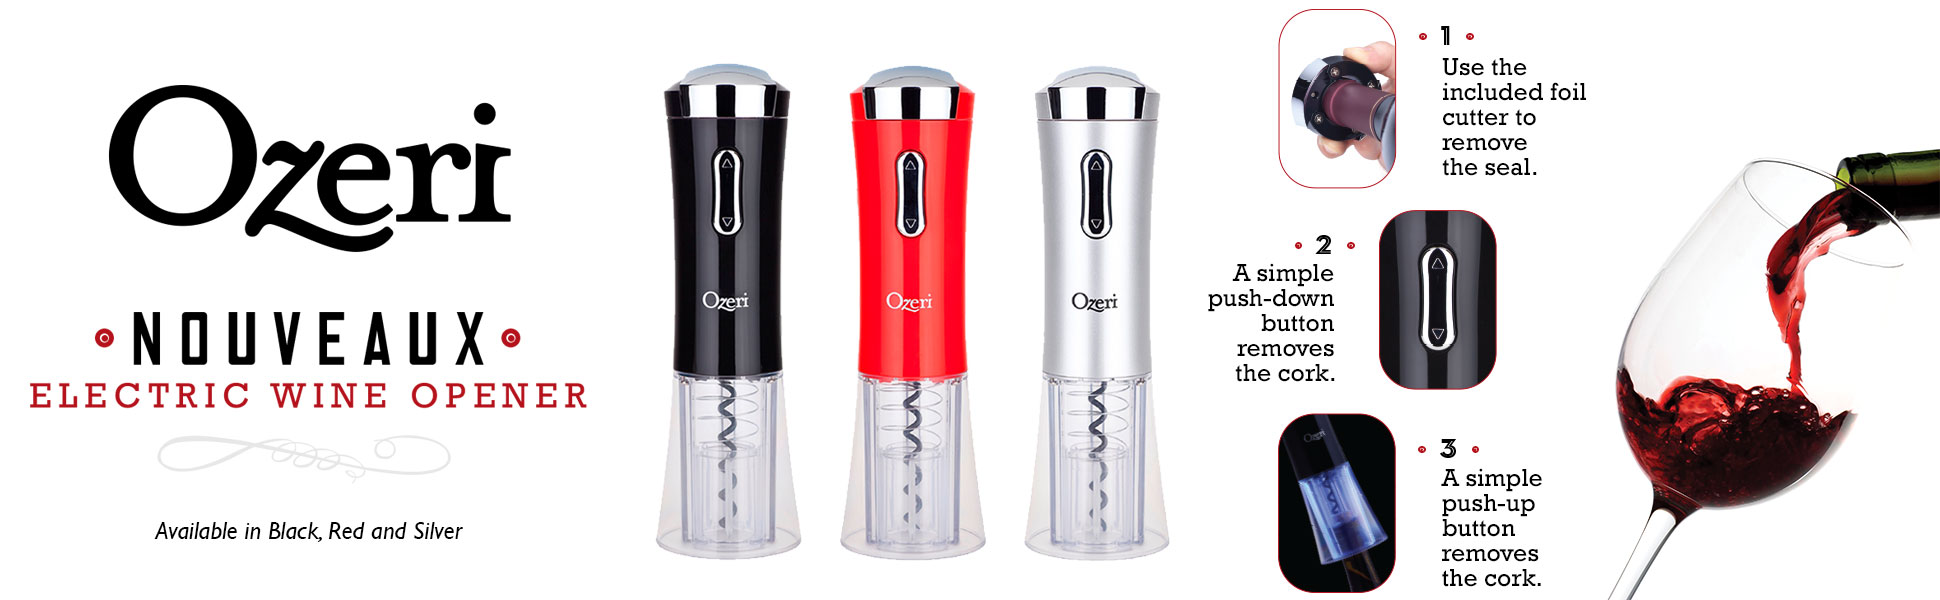 Ozeri Nouveaux Electric Wine Opener with Removable Free Foil Cutter, Stylish Red